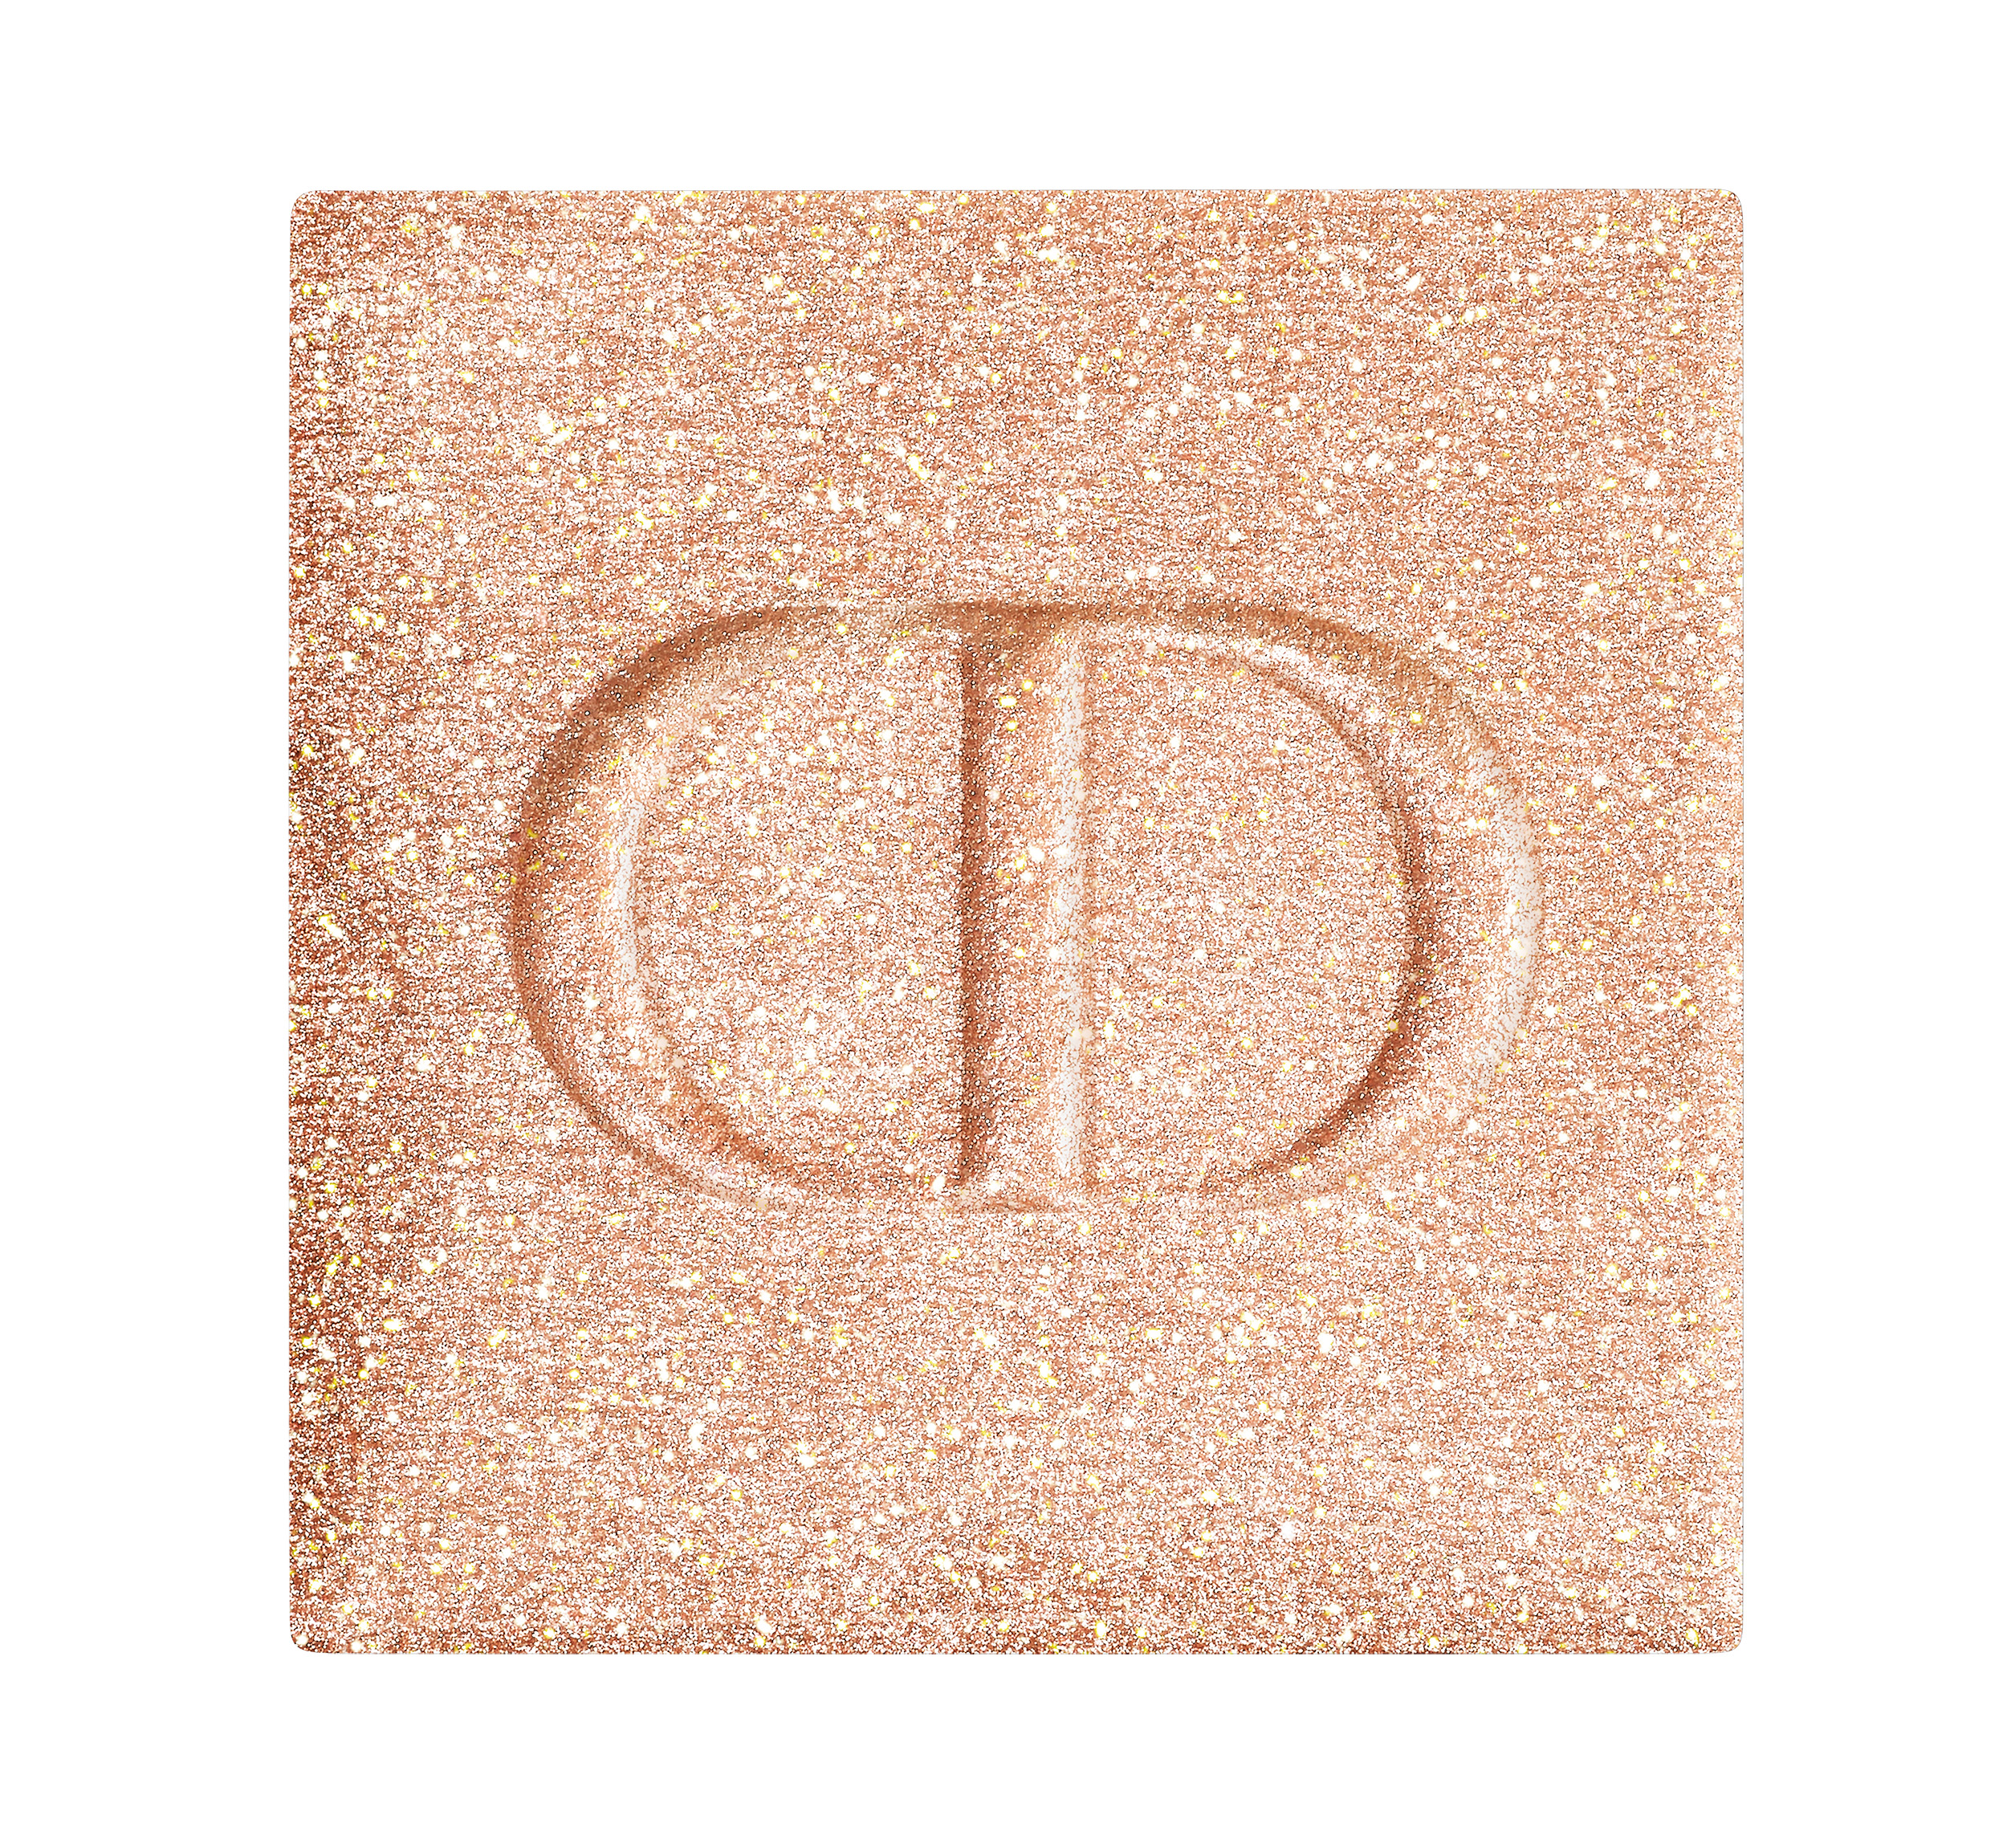 DIOR Mono Couleur Couture Eyeshadow, 633 coral look